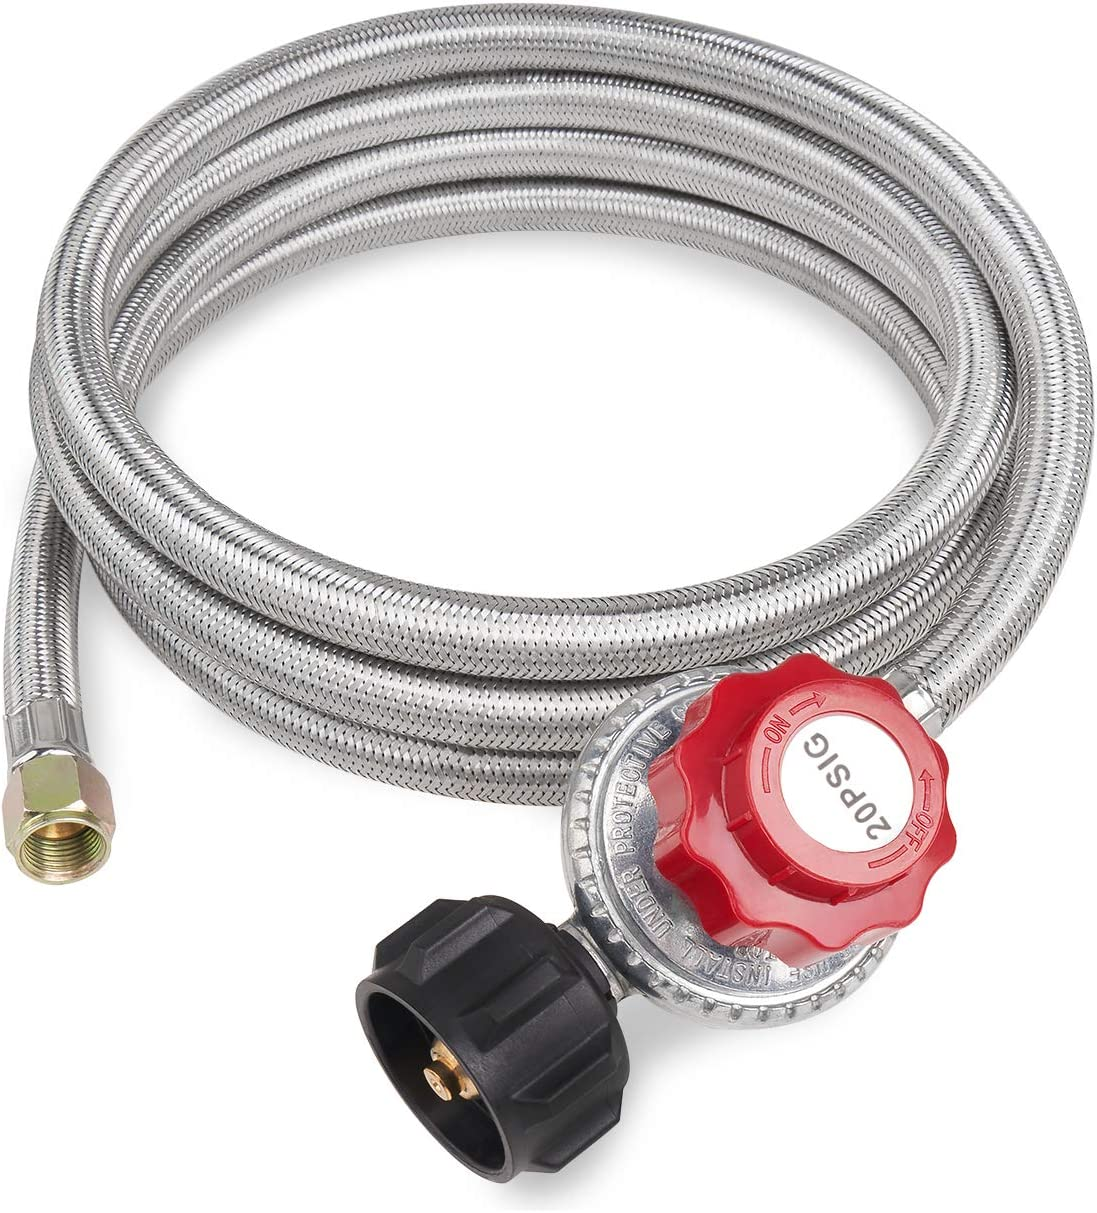 GASPRO 8FT 20 PSI Adjustable Propane Regulator with Braided Hose for Turkey Fryer, Burner, Cooker, Grill, Firepit etc